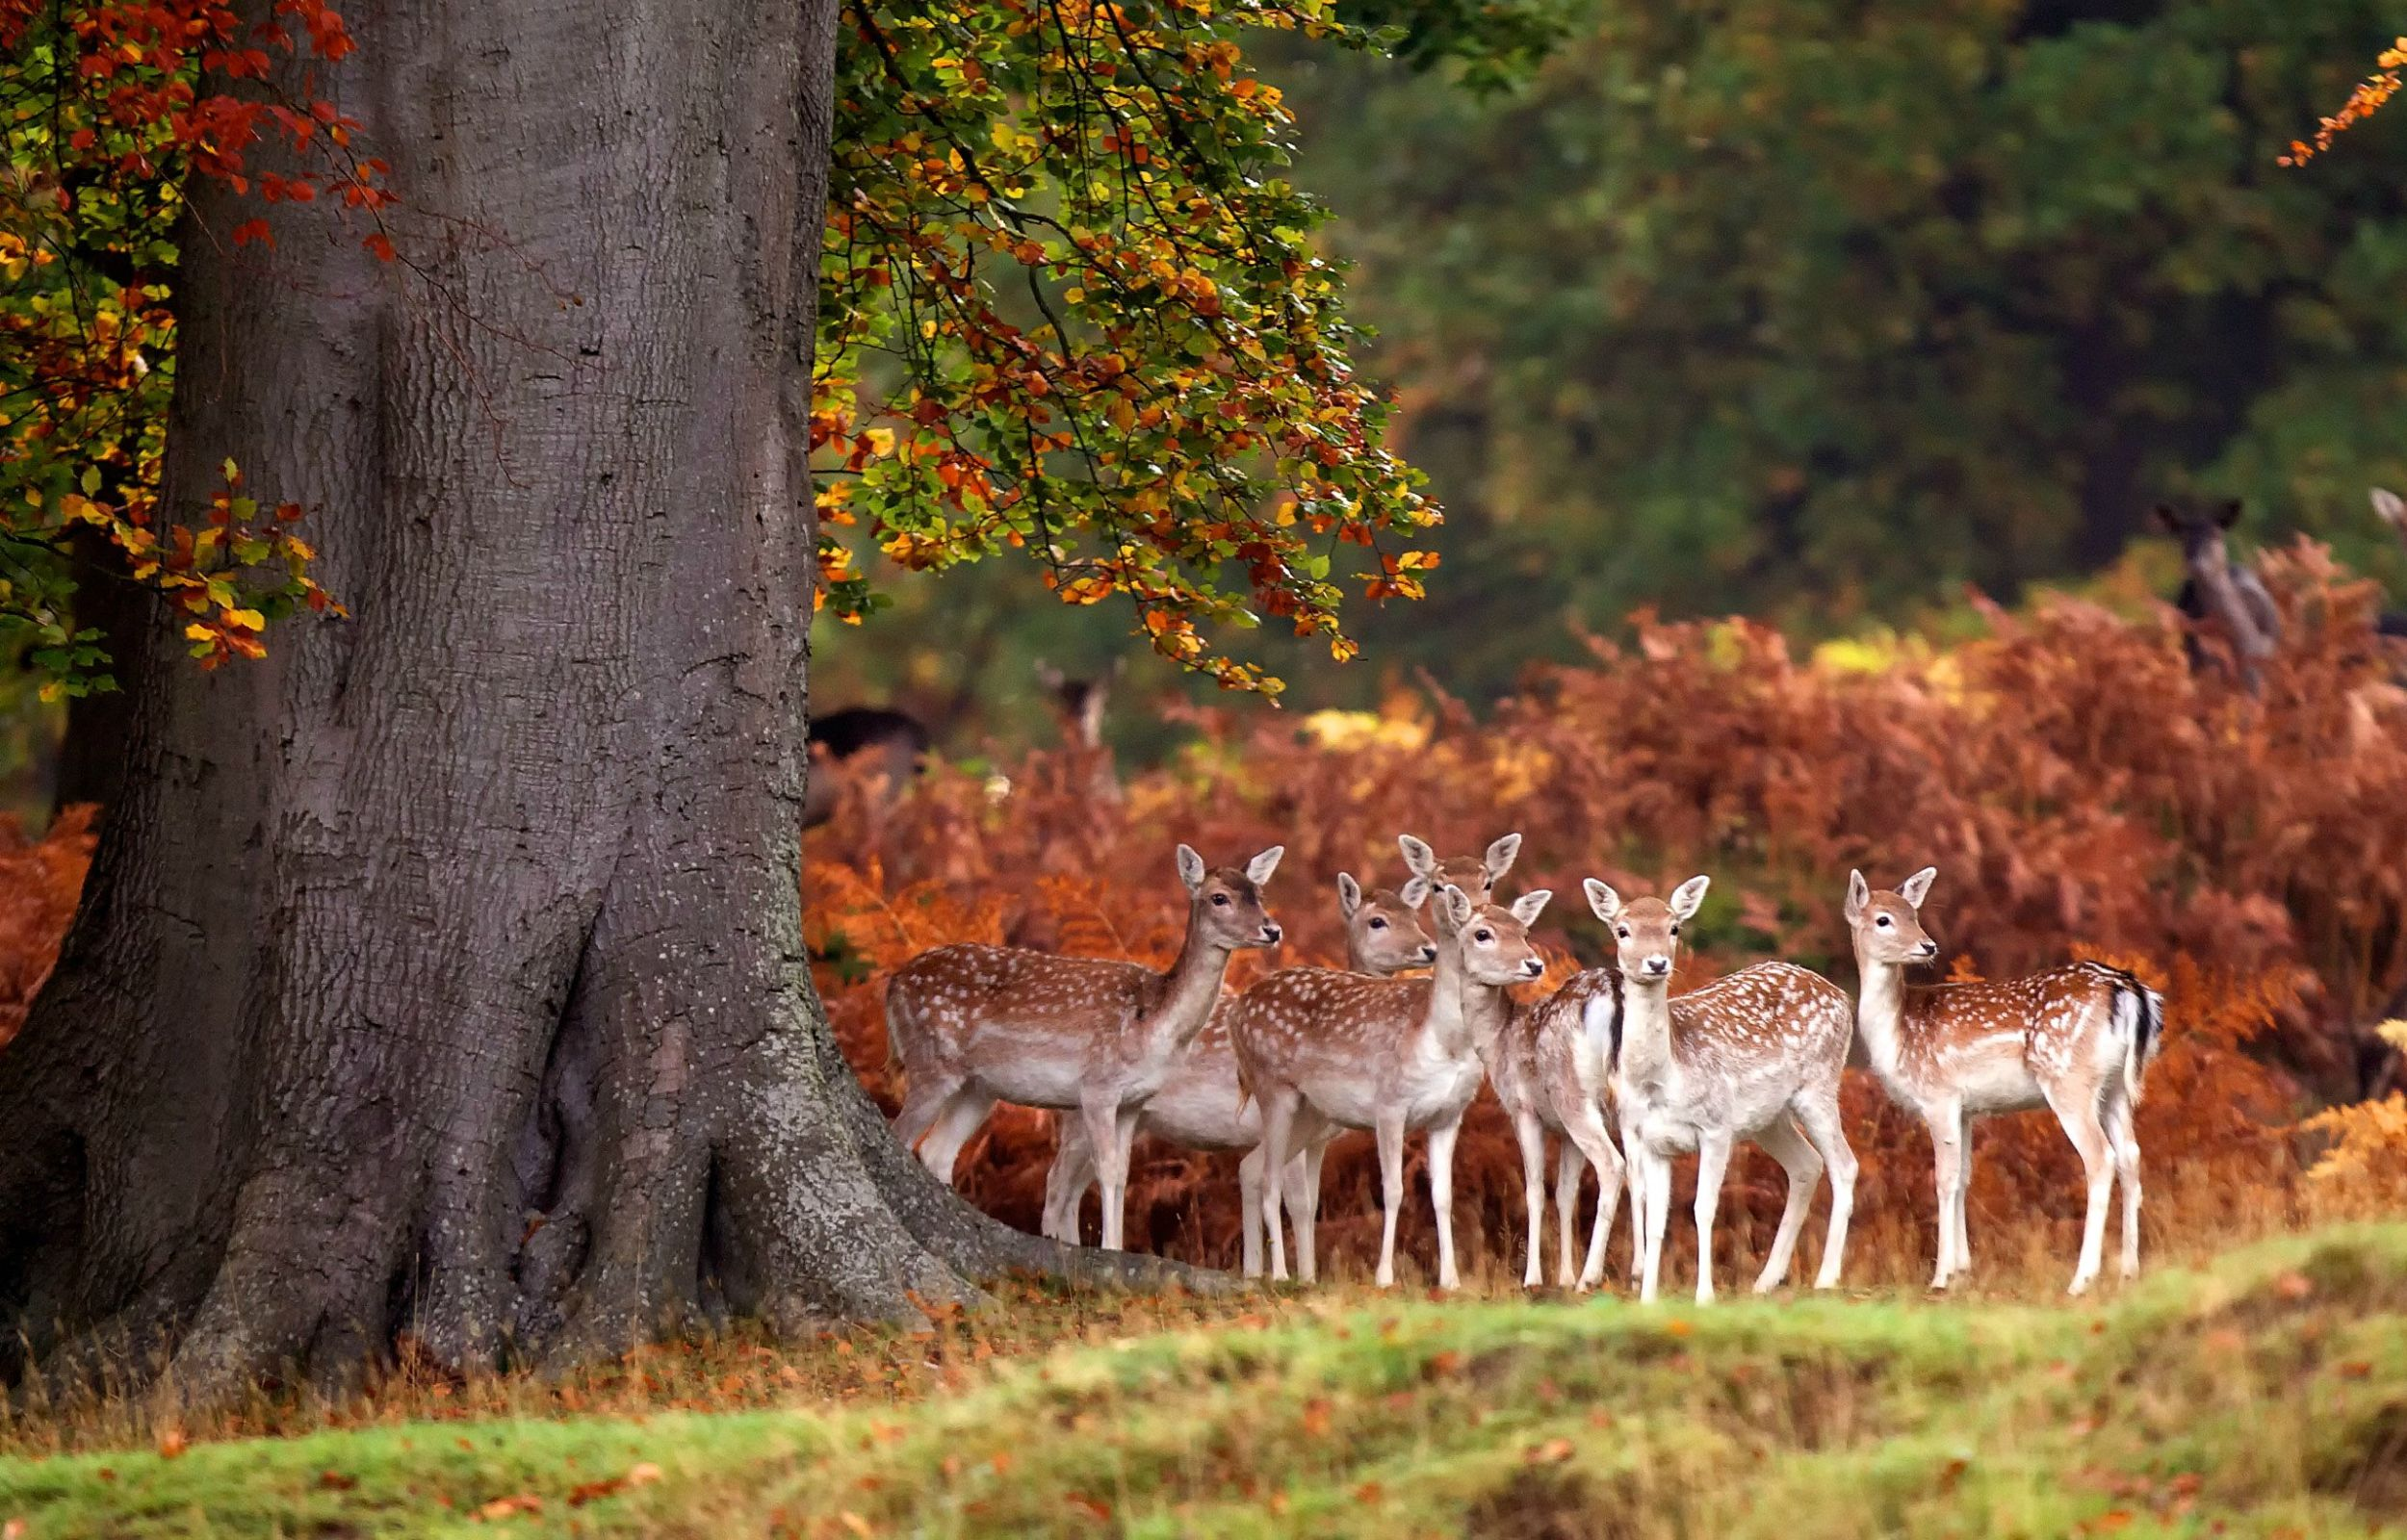 hd wallpaper deer